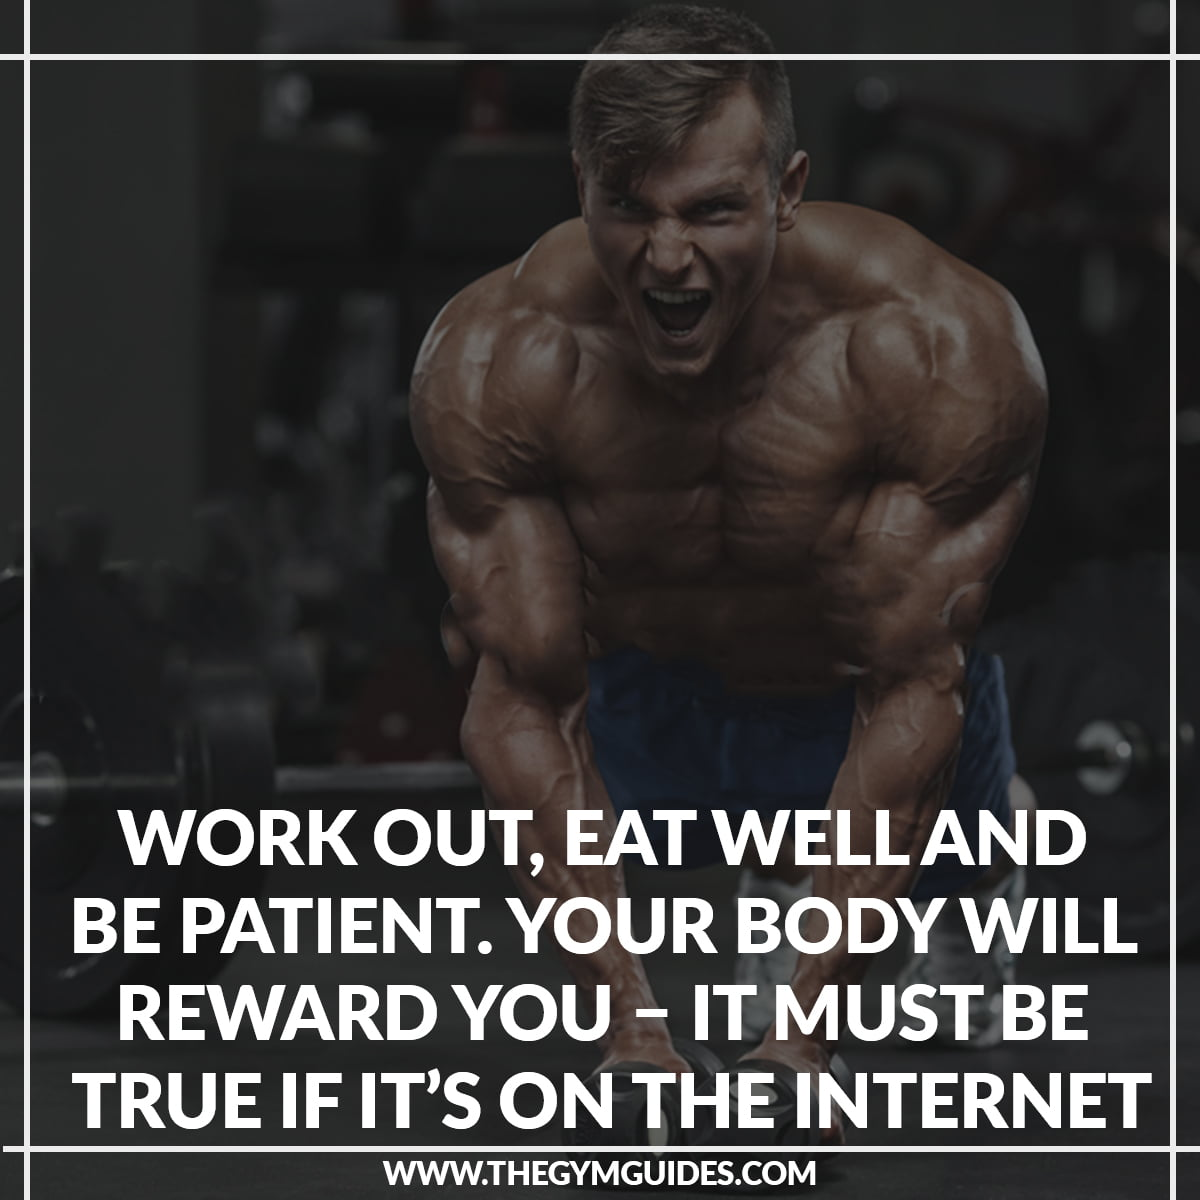 Work Out, Eat Well and Be Patient. Your Body Will Reward You – it must be true if it's on the internet